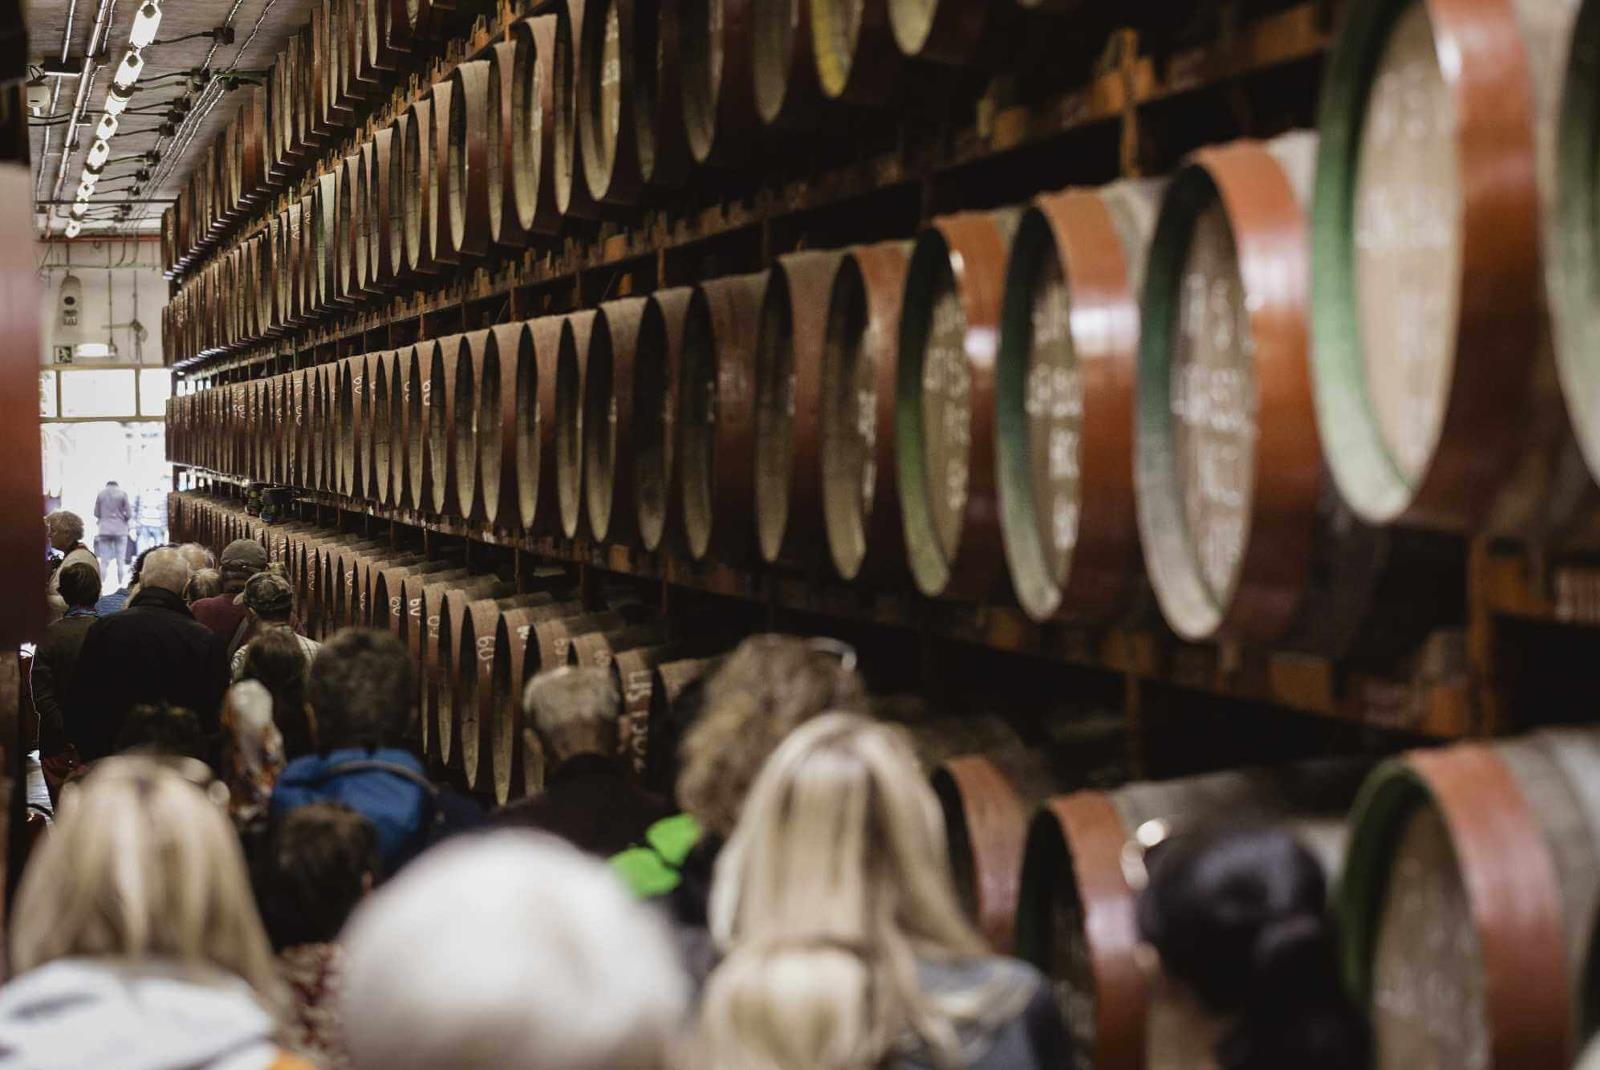 Guided-Tour-at-Ron-Arehucas-Distillery-5